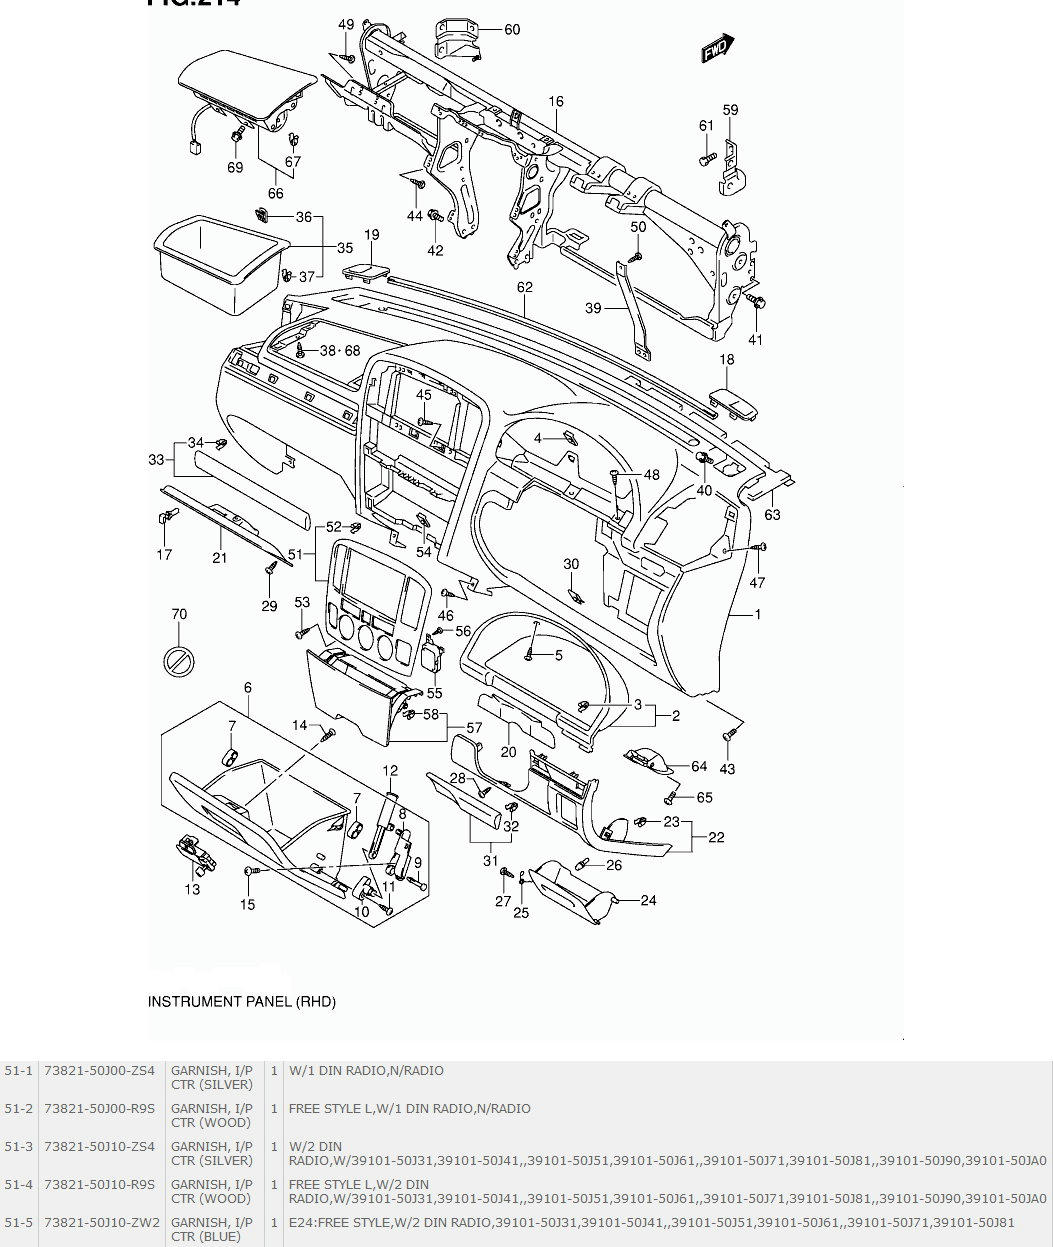 pajero 4m40 wiring diagram two stage thermostat mitsubishi montero io parts imageresizertool com